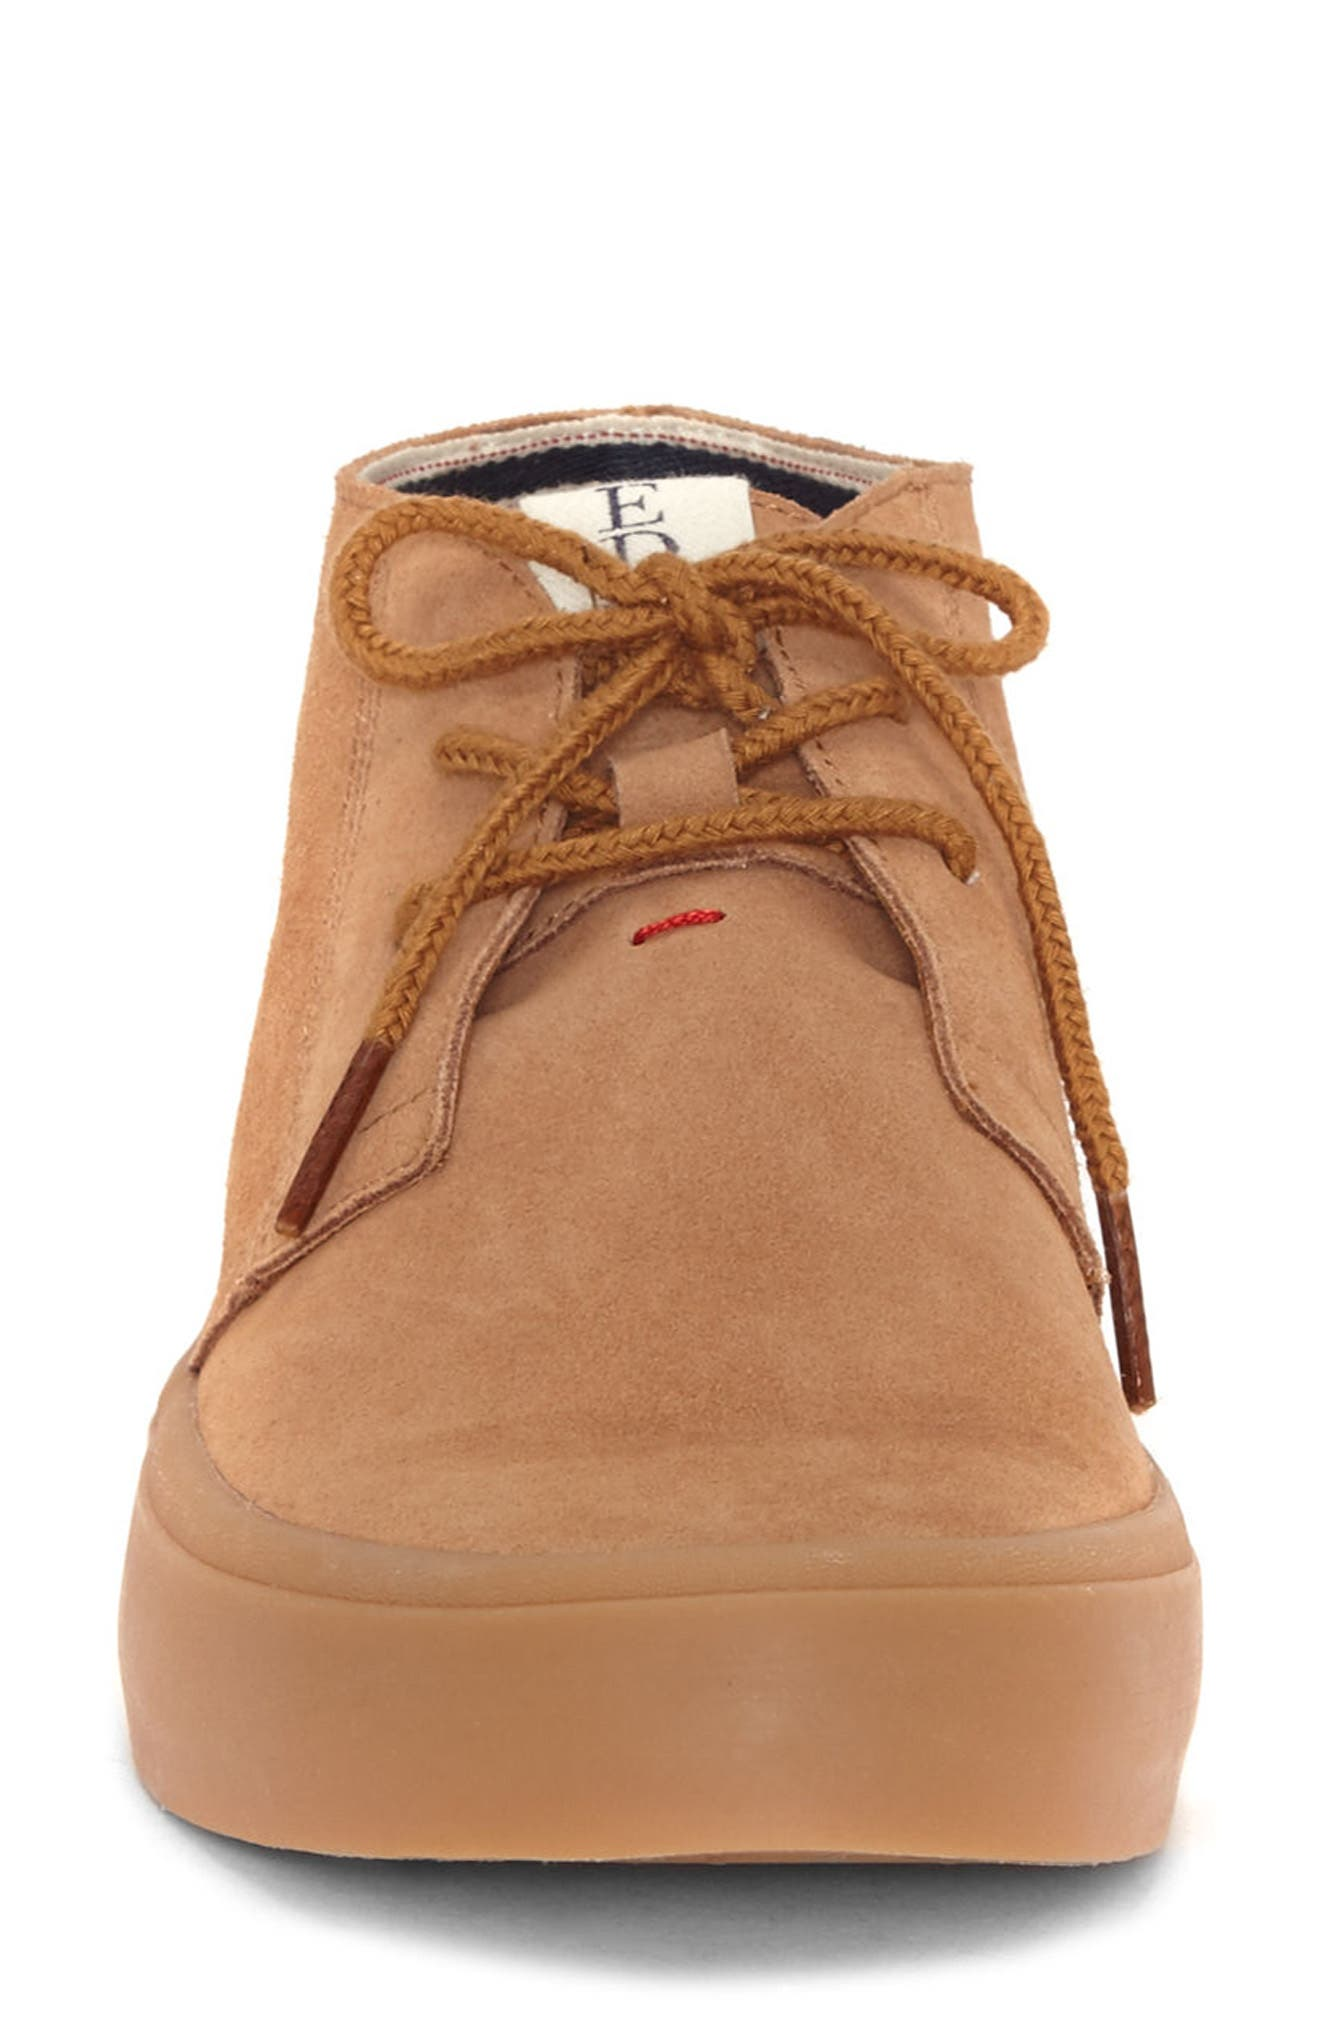 Dax Chukka Sneaker,                             Alternate thumbnail 4, color,                             Honey Suede